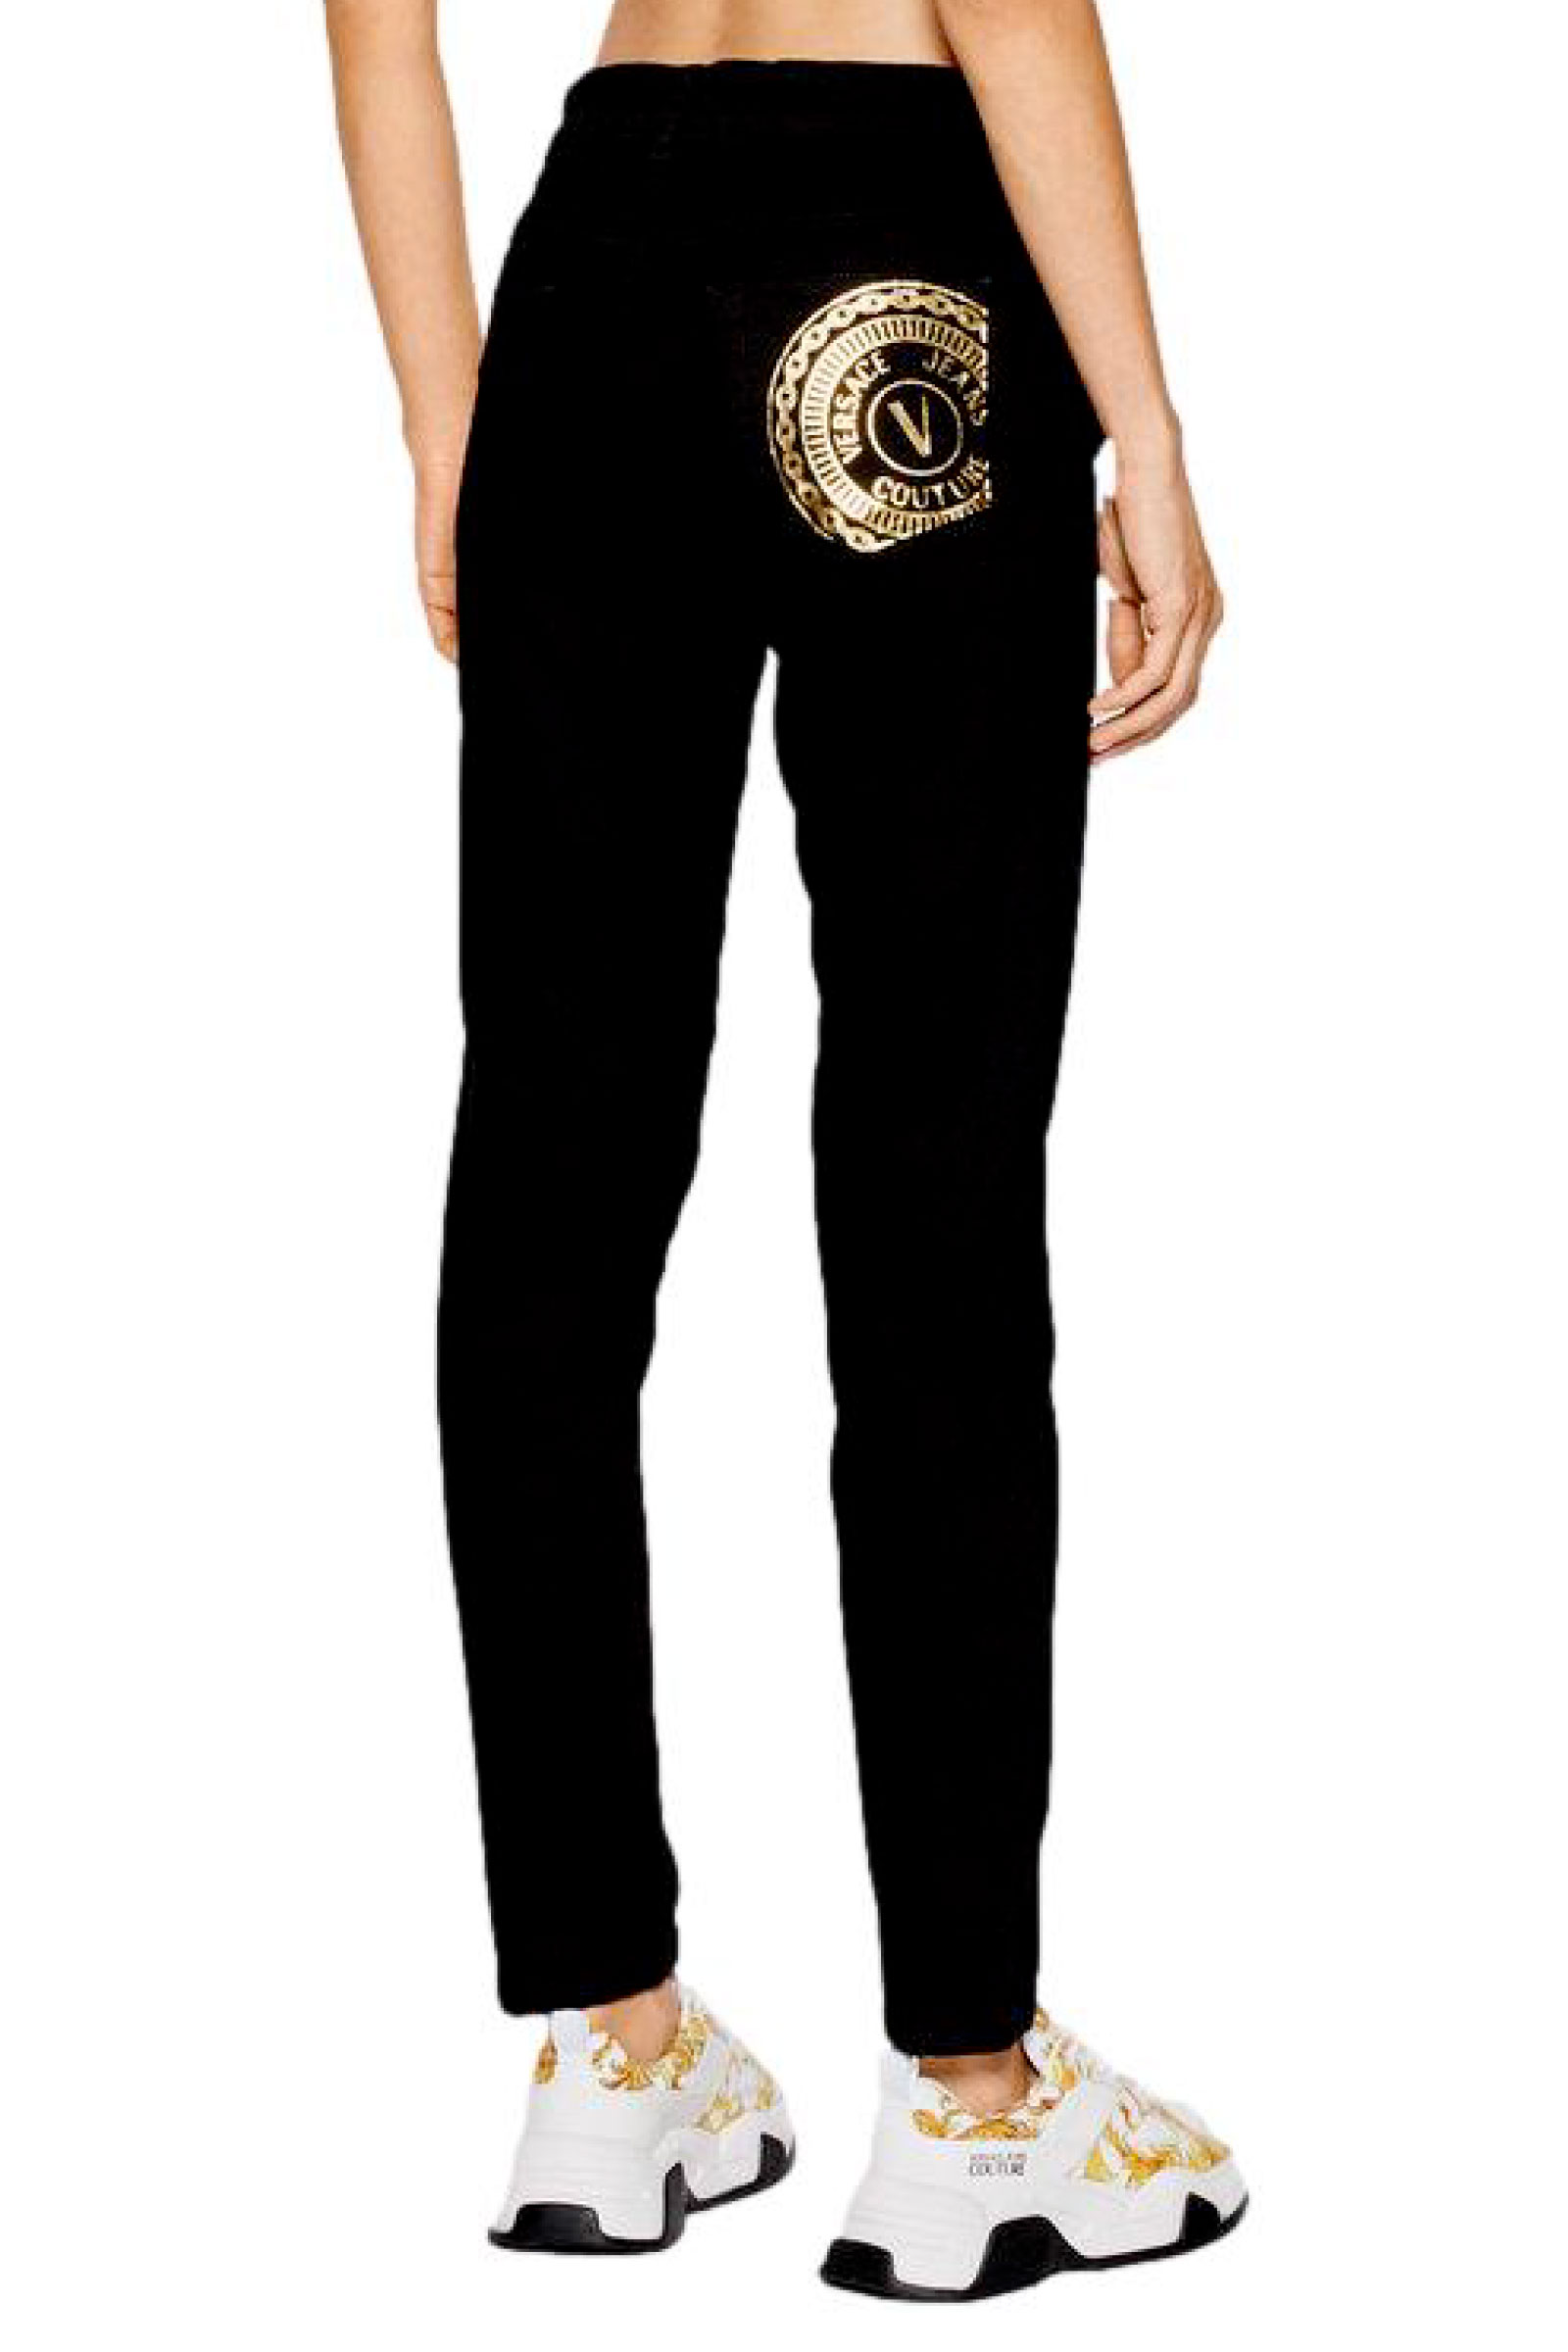 VERSACE JEANS COUTURE   Jeans   71HABCK1 CDW00900